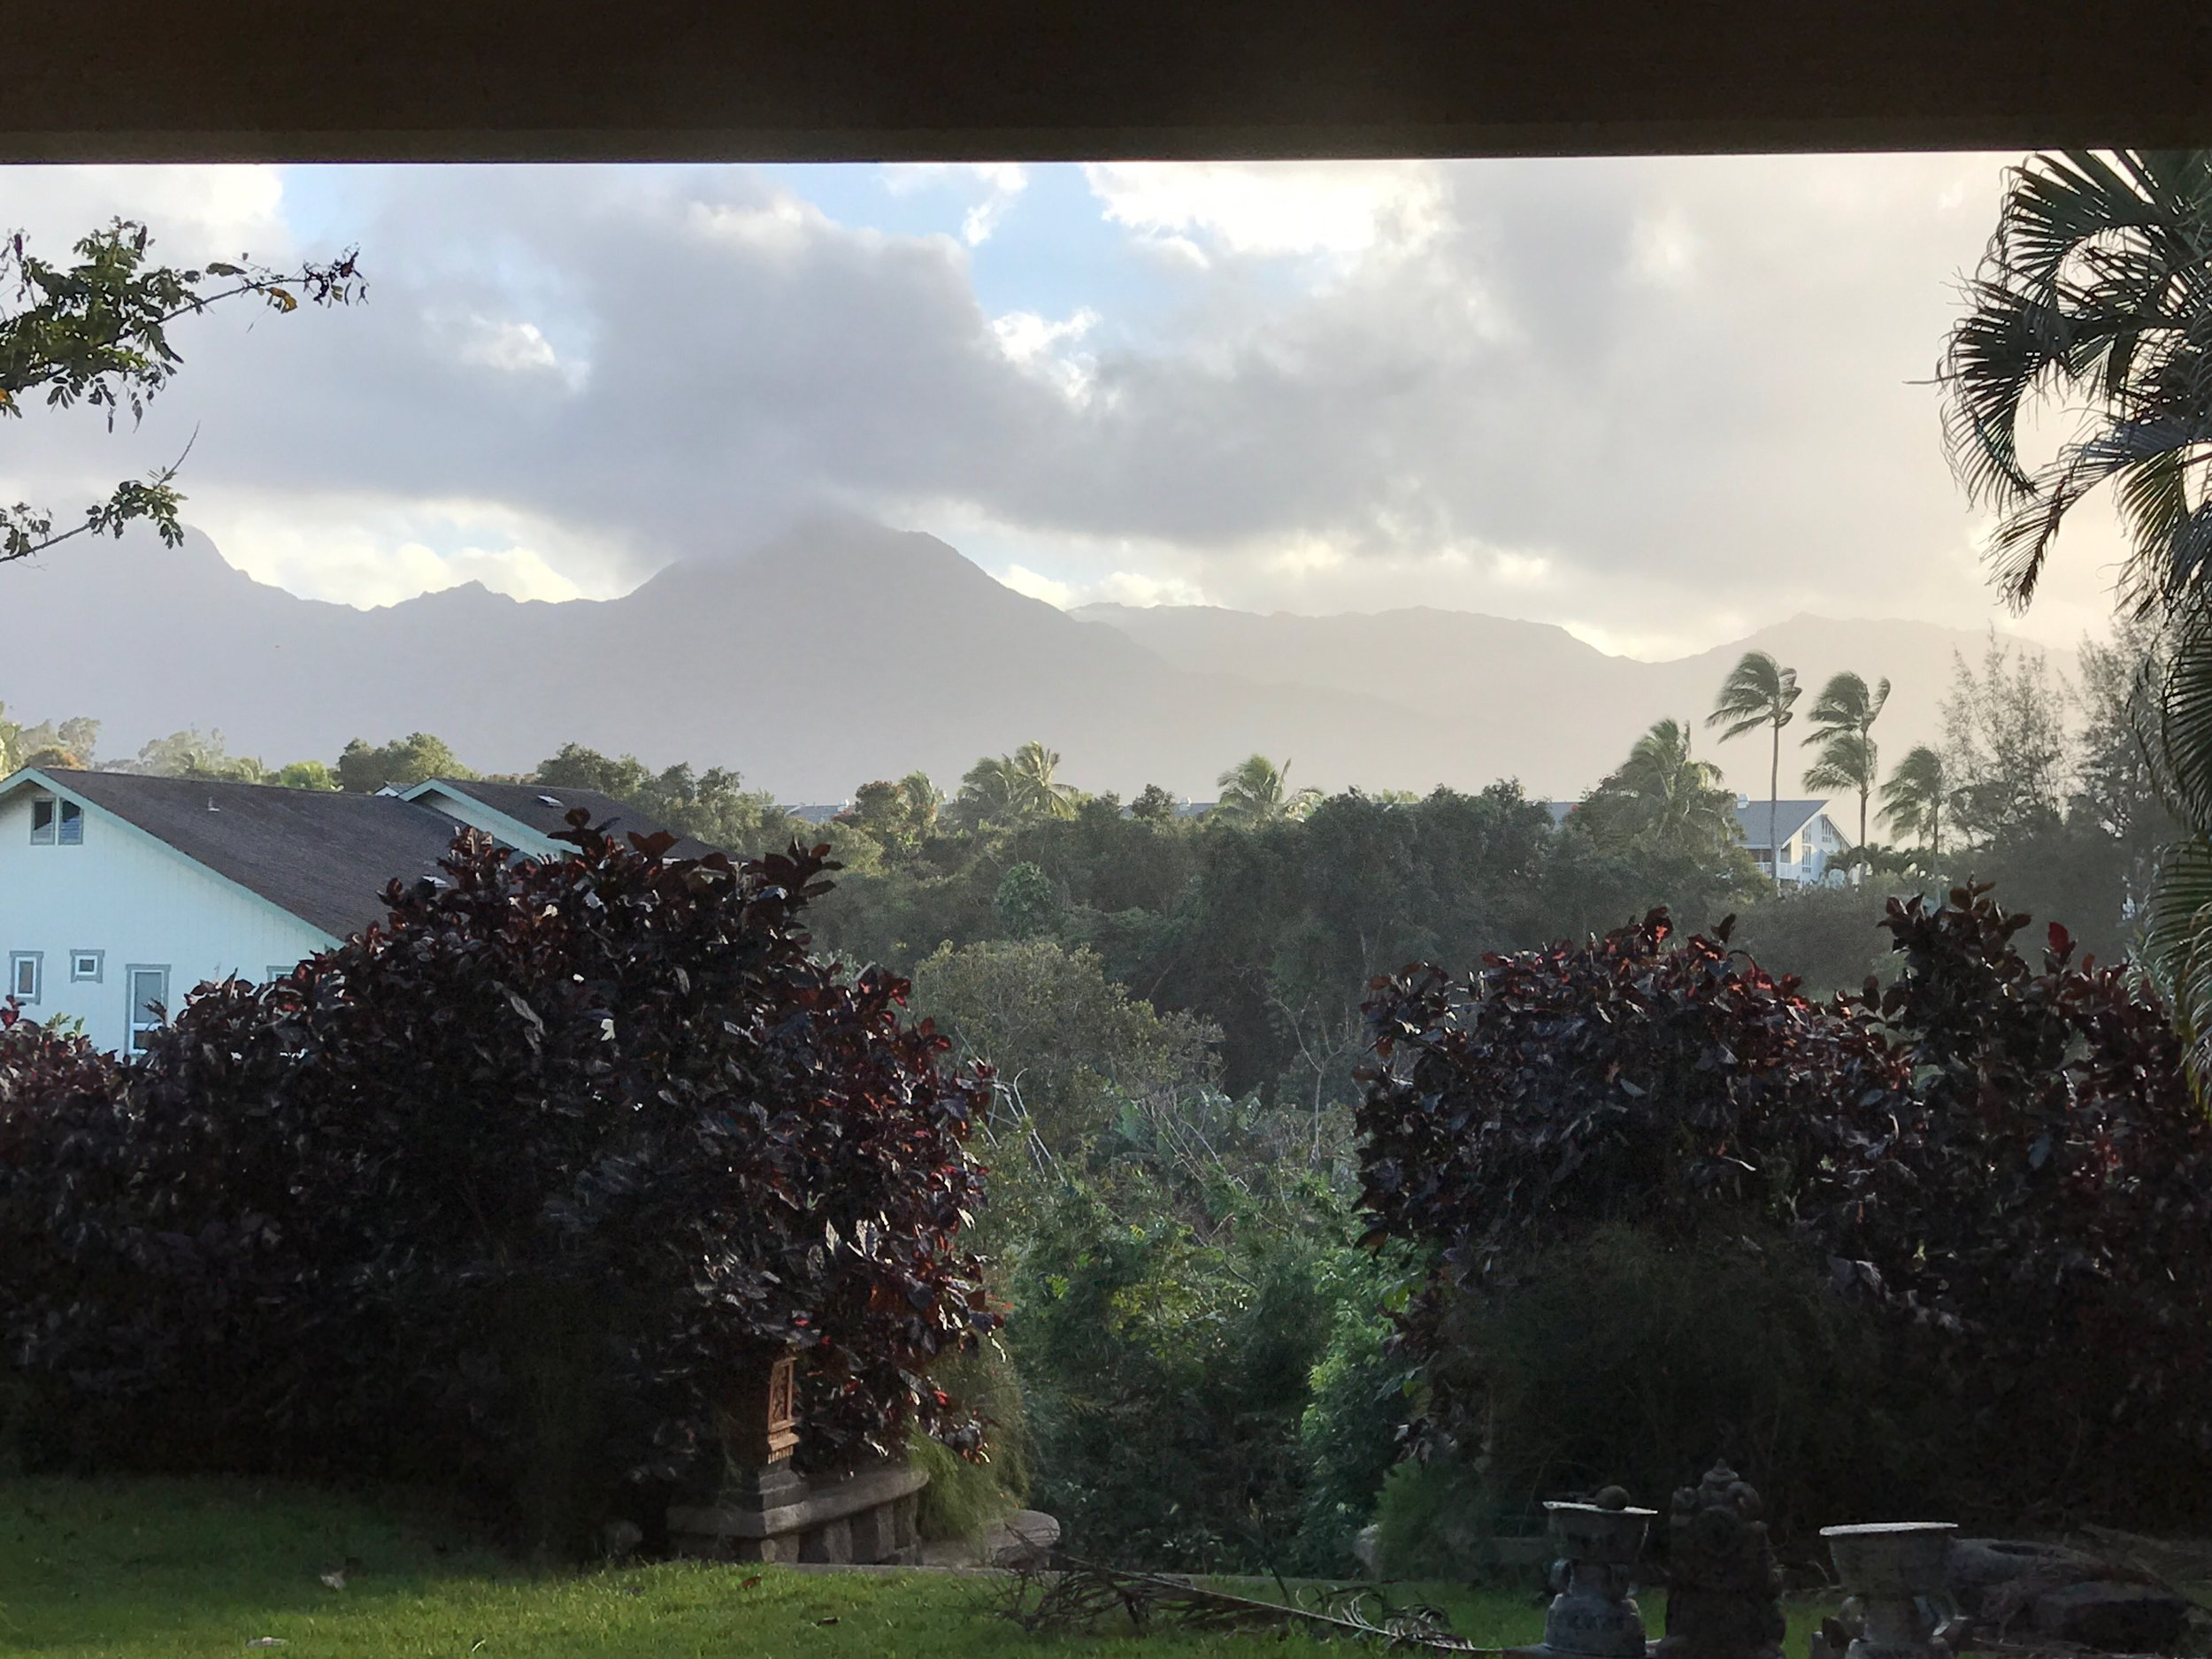 View of the beautiful mountains from our backyard for the next few days